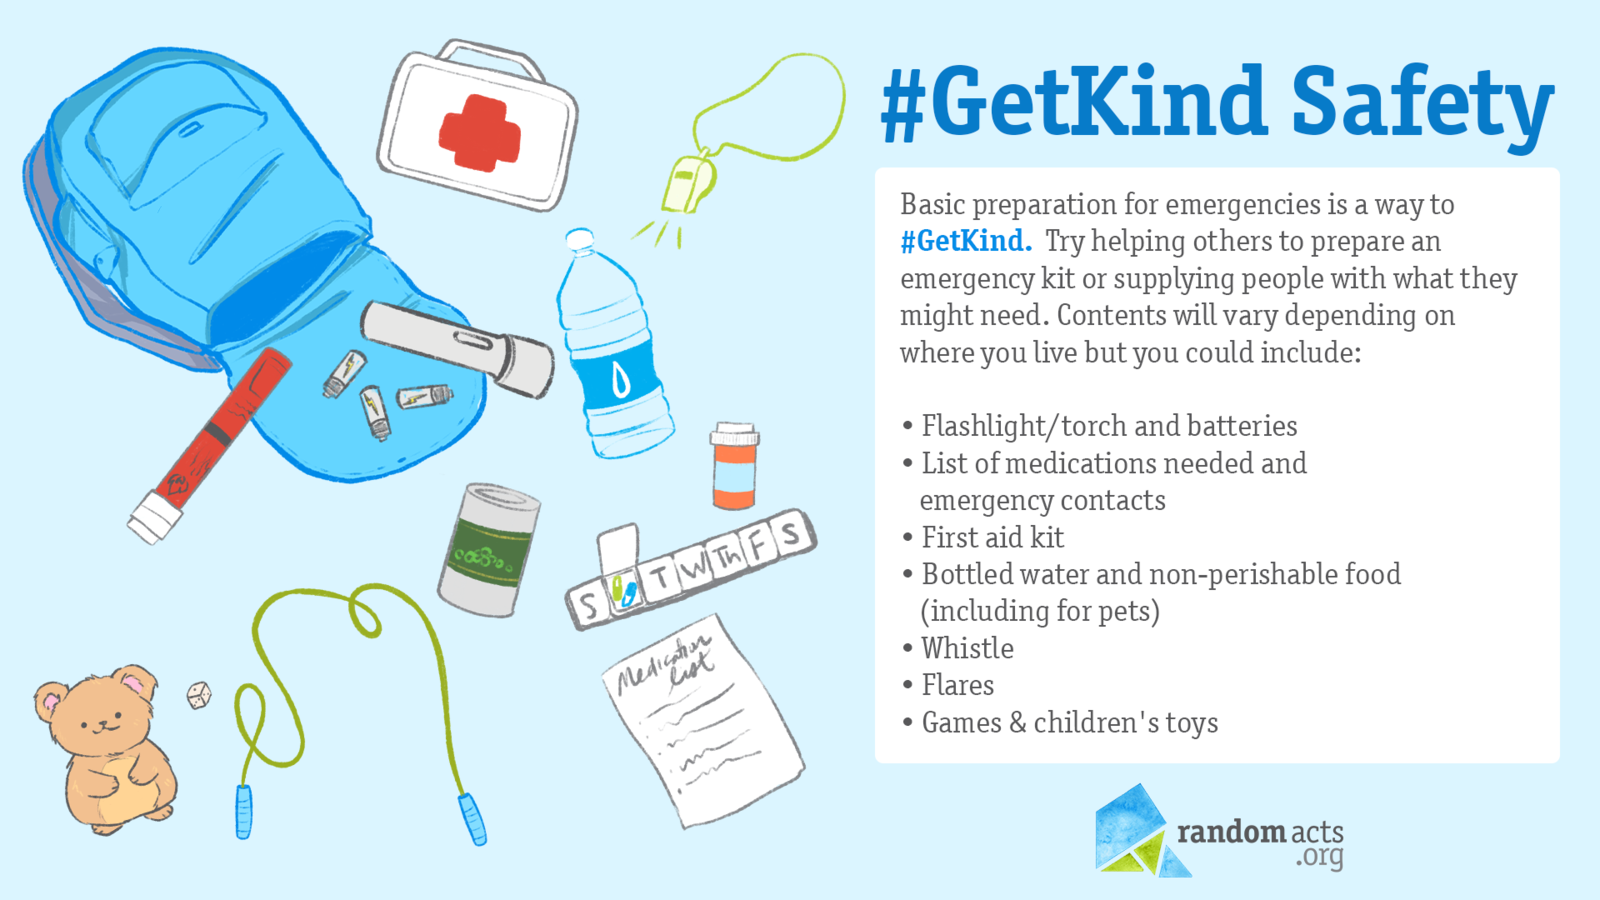 Image of a blue backpack spilling emergency supplies including a first aid kit, medications, flashlight, water bottle, and notepad with text reading #GetKind Safety.